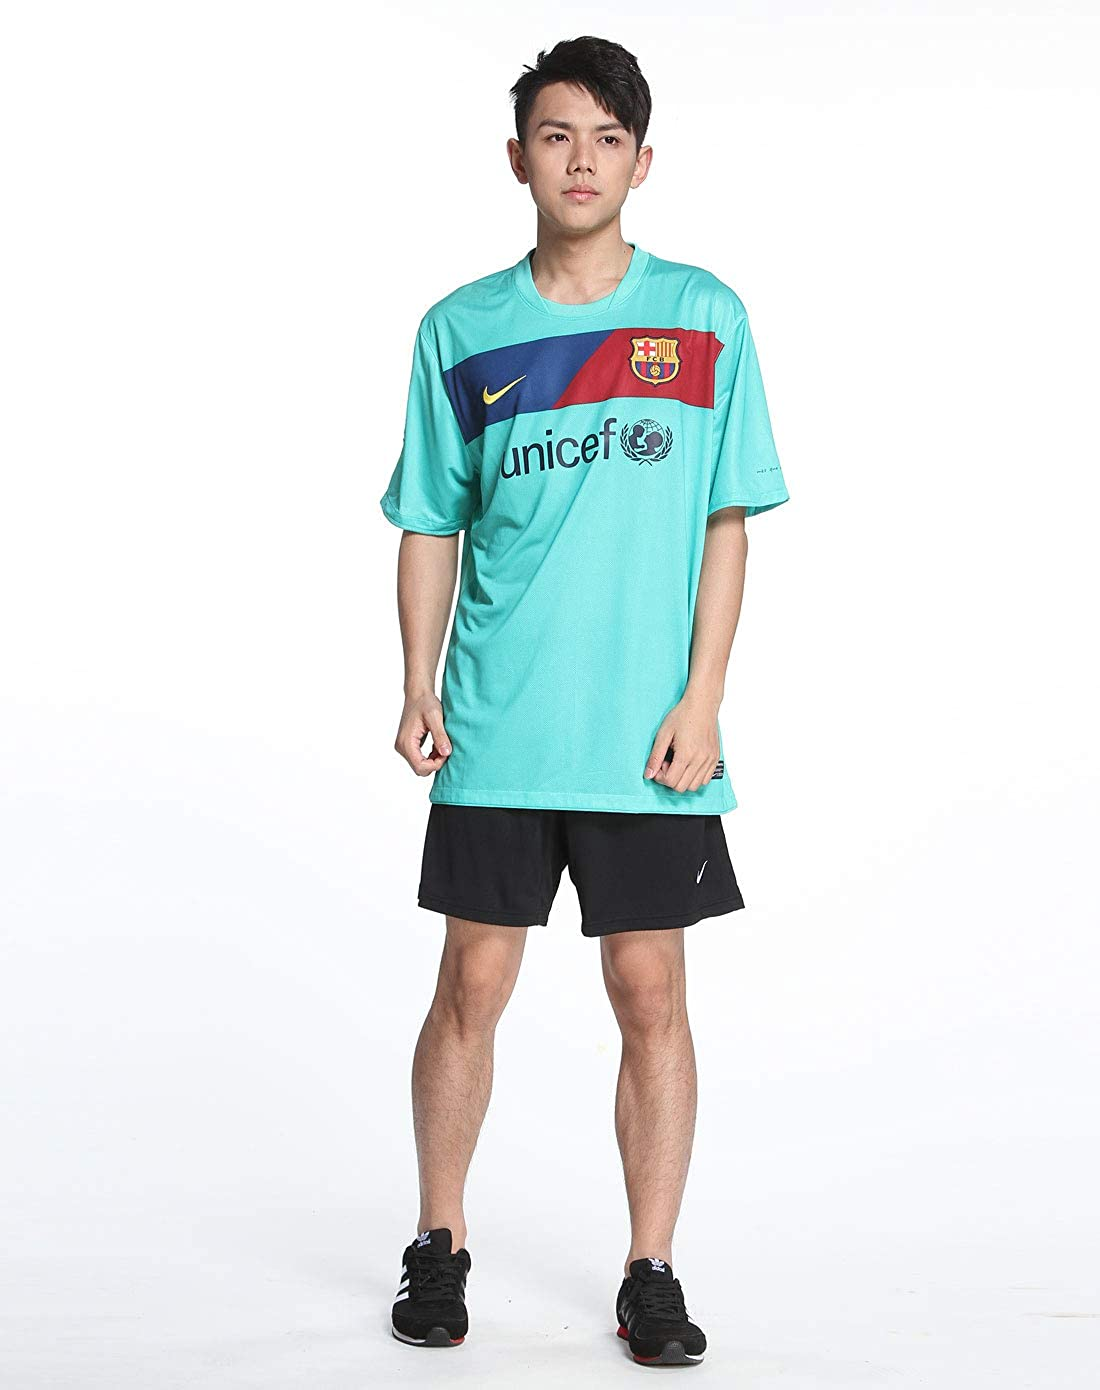 amazon com nike barcelona away 10 11 soccer jersey clothing nike barcelona away 10 11 soccer jersey